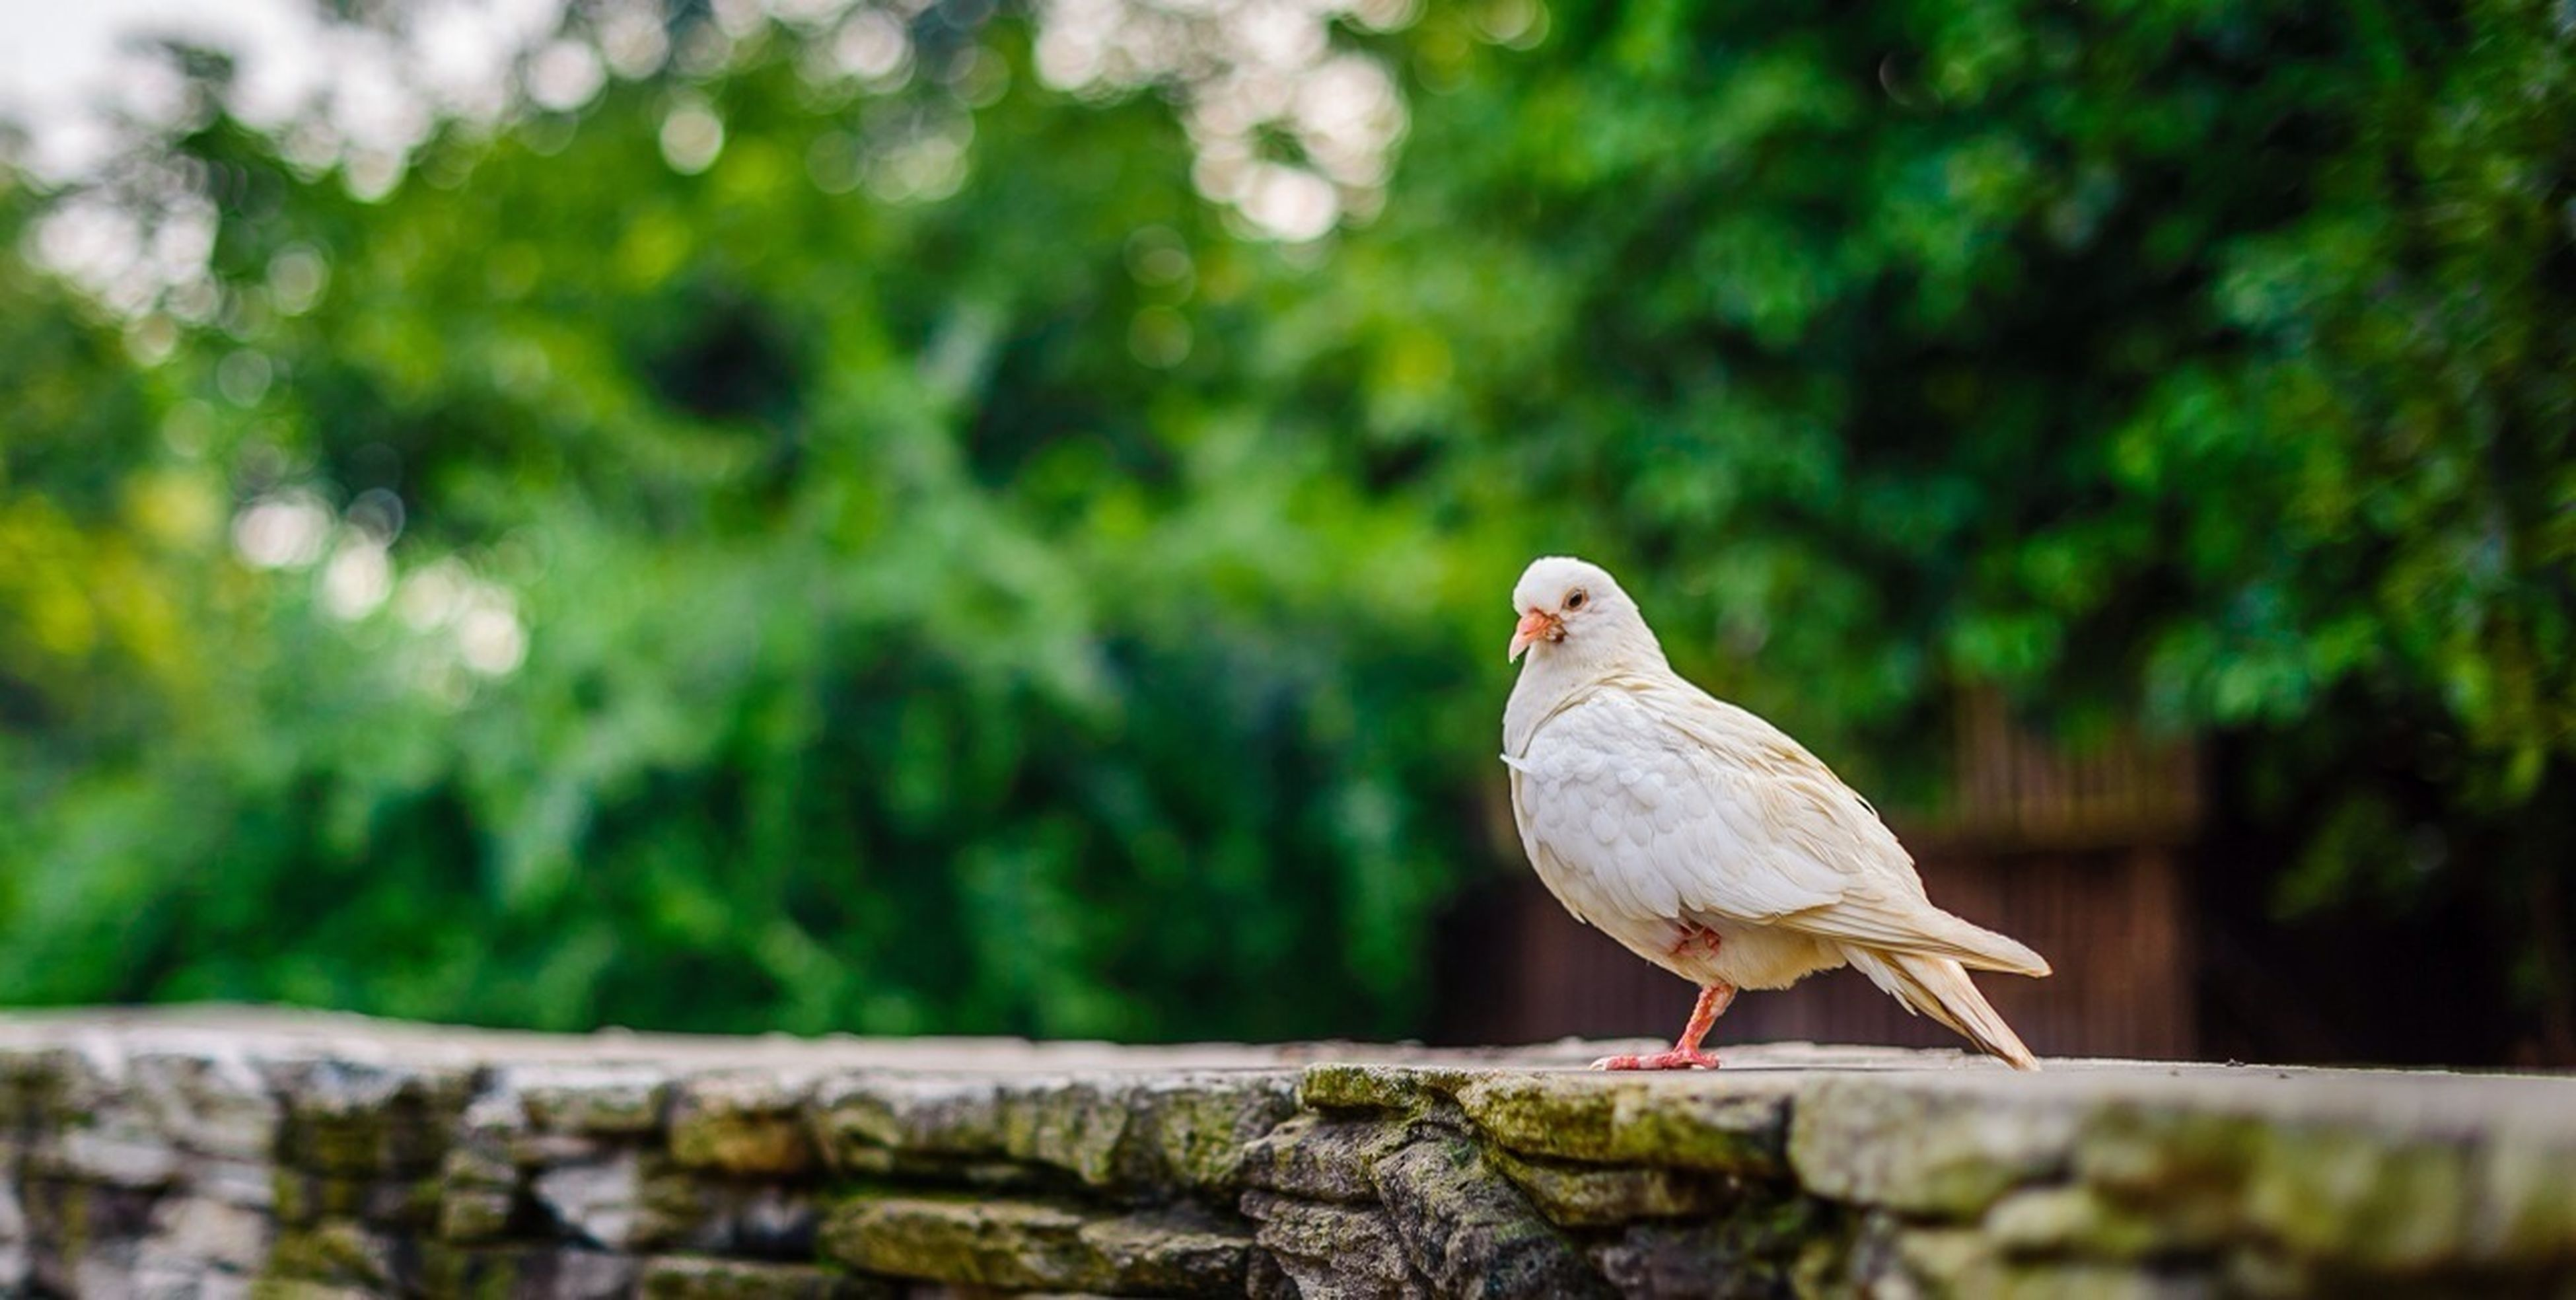 bird, animal themes, animals in the wild, perching, wildlife, one animal, focus on foreground, full length, pigeon, close-up, nature, selective focus, outdoors, day, side view, beak, no people, zoology, two animals, railing